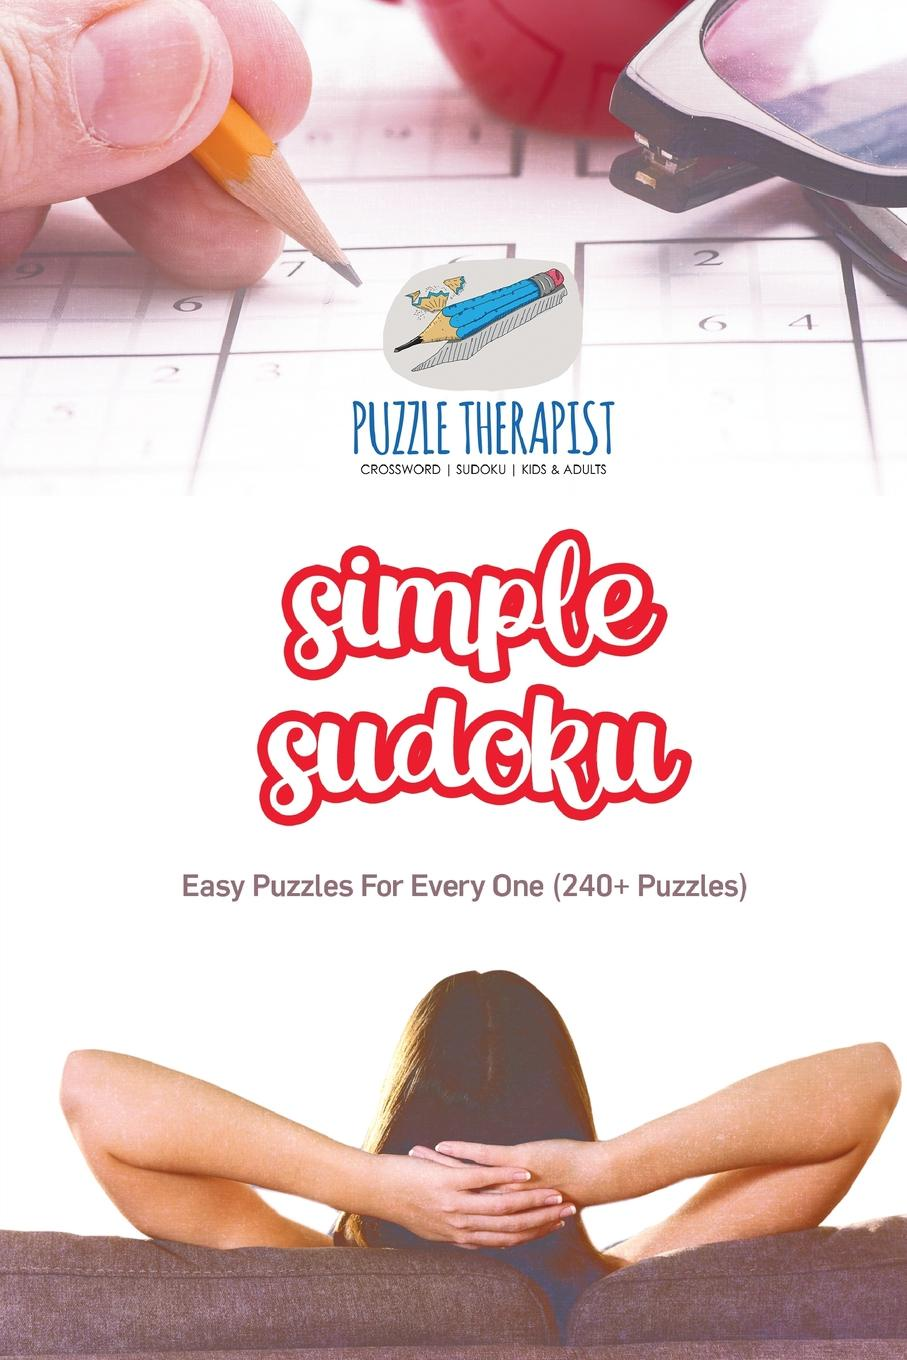 Puzzle Therapist Simple Sudoku . Easy Puzzles For Every One (240+ Puzzles) puzzle therapist one a day sudoku for the utterly obsessed large print puzzles for adults